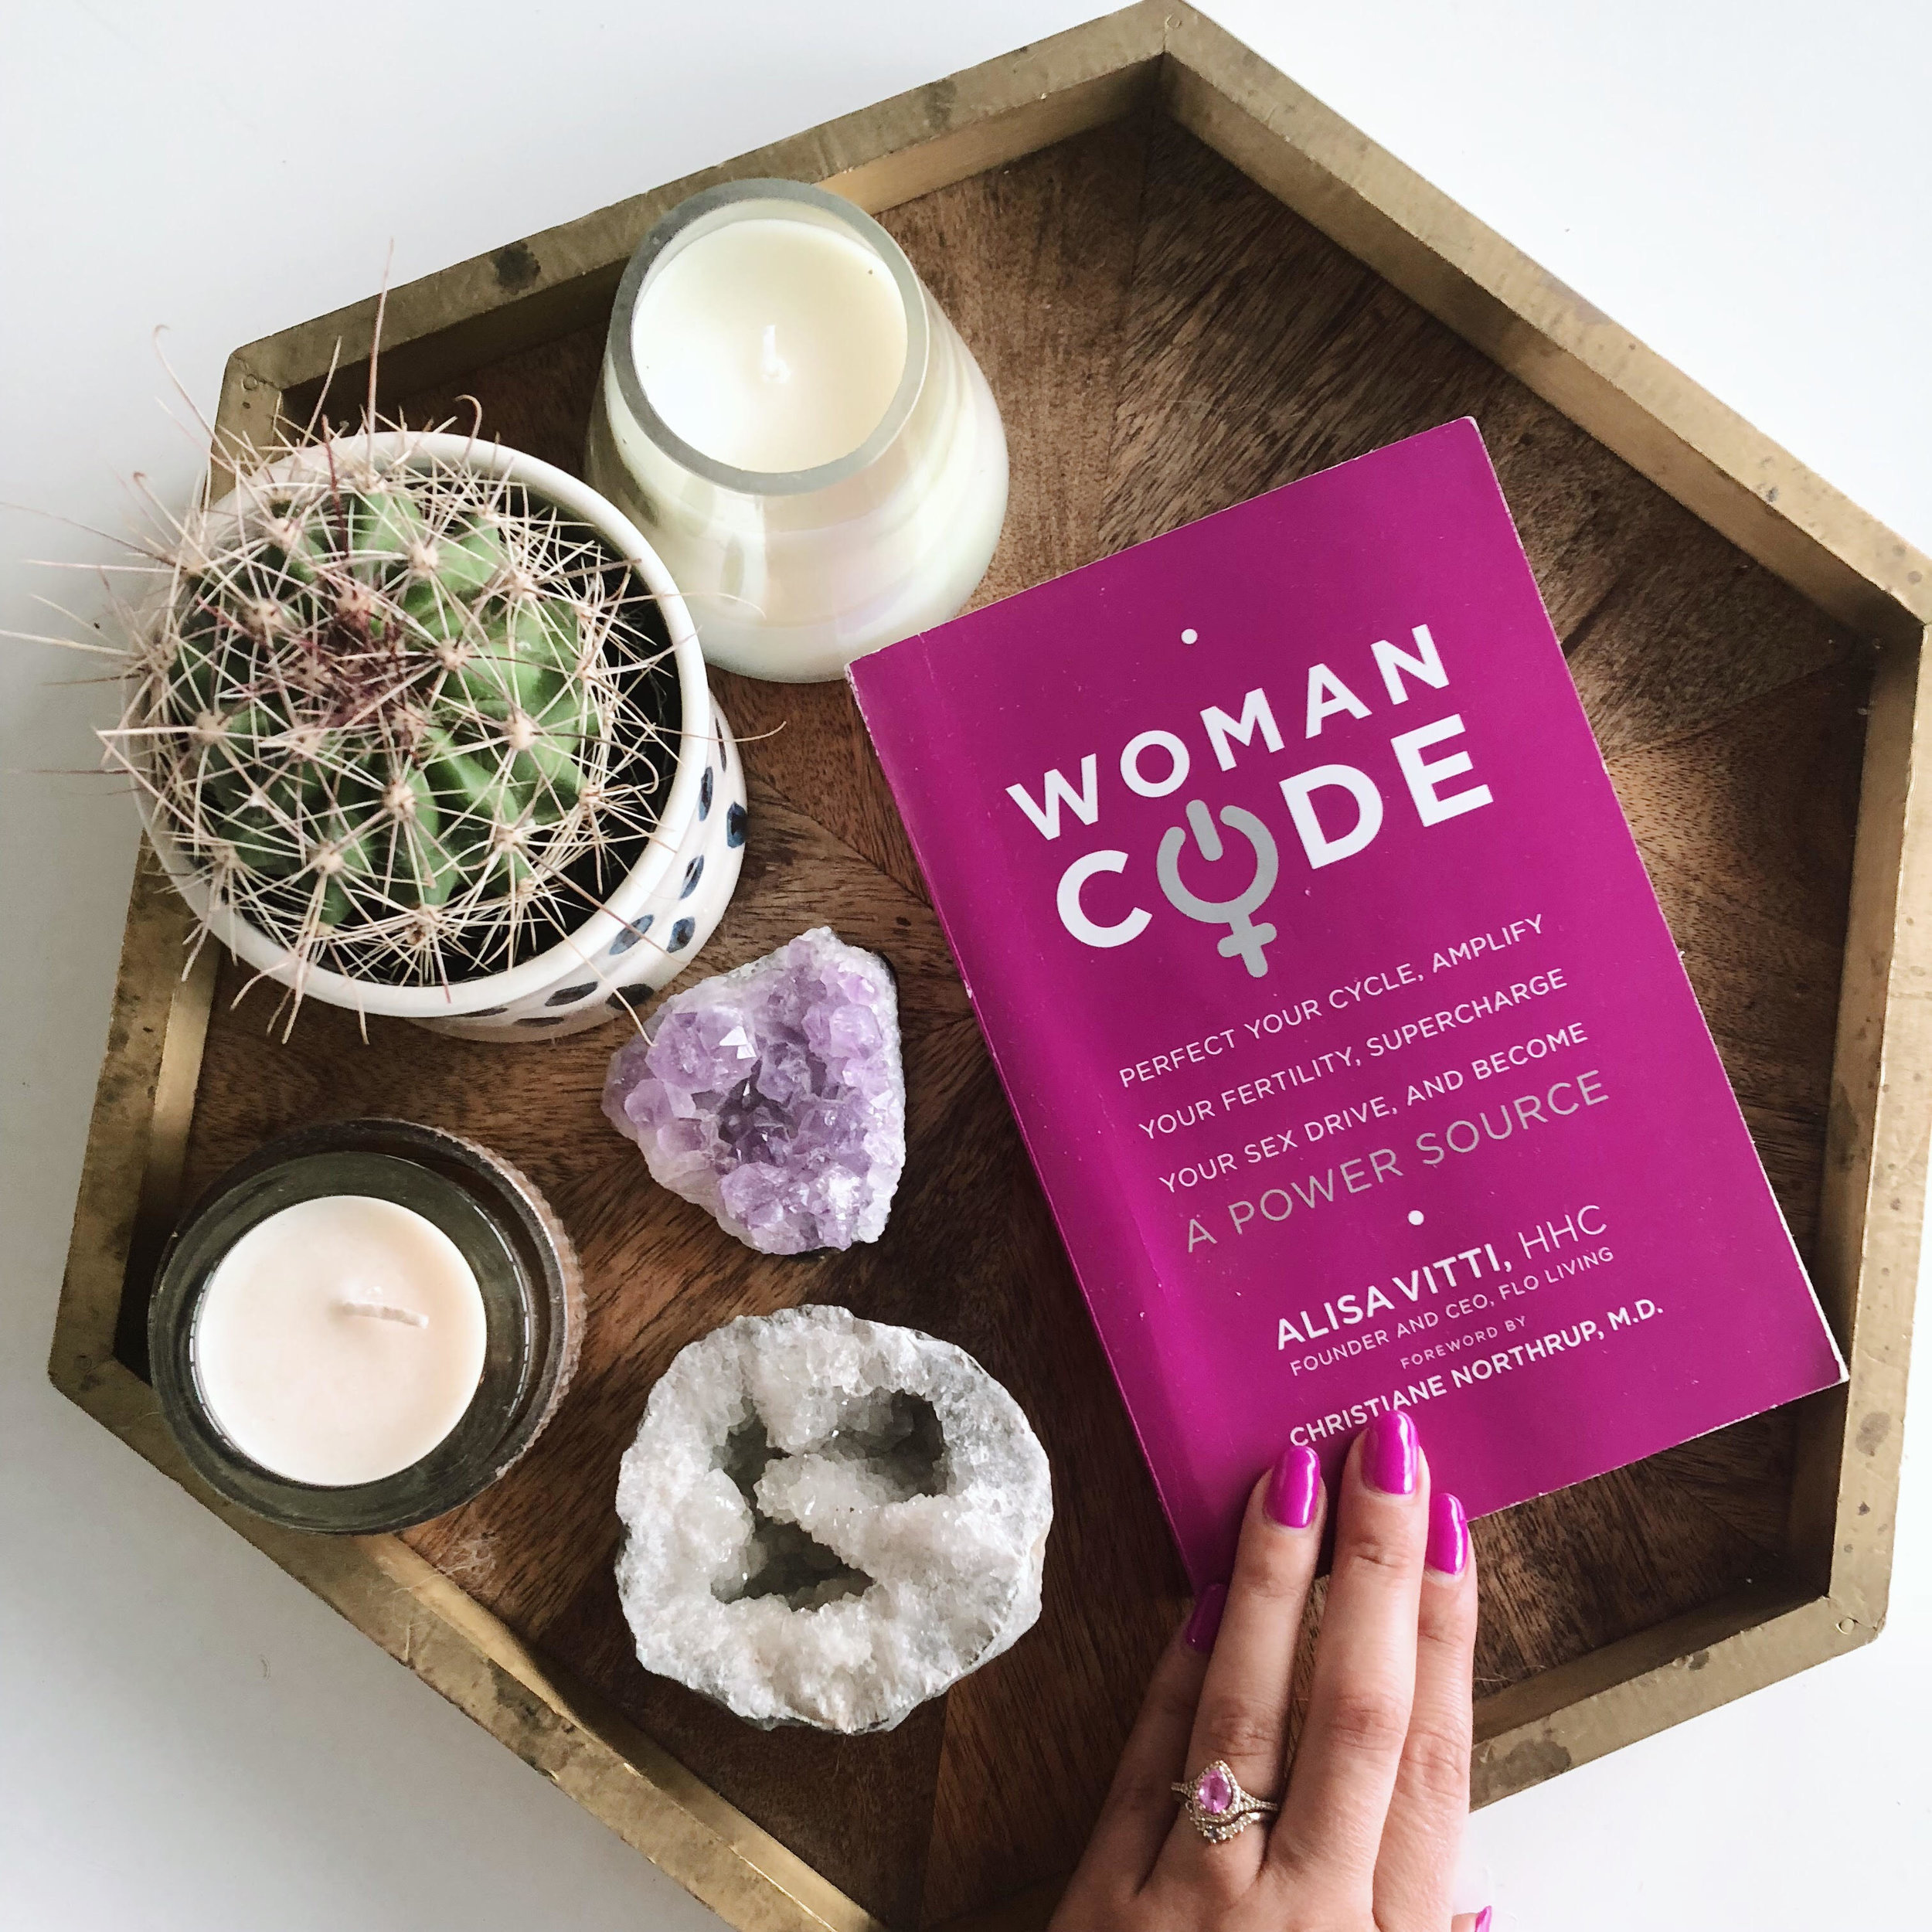 Chakra Girl Radio The Woman Code.jpg